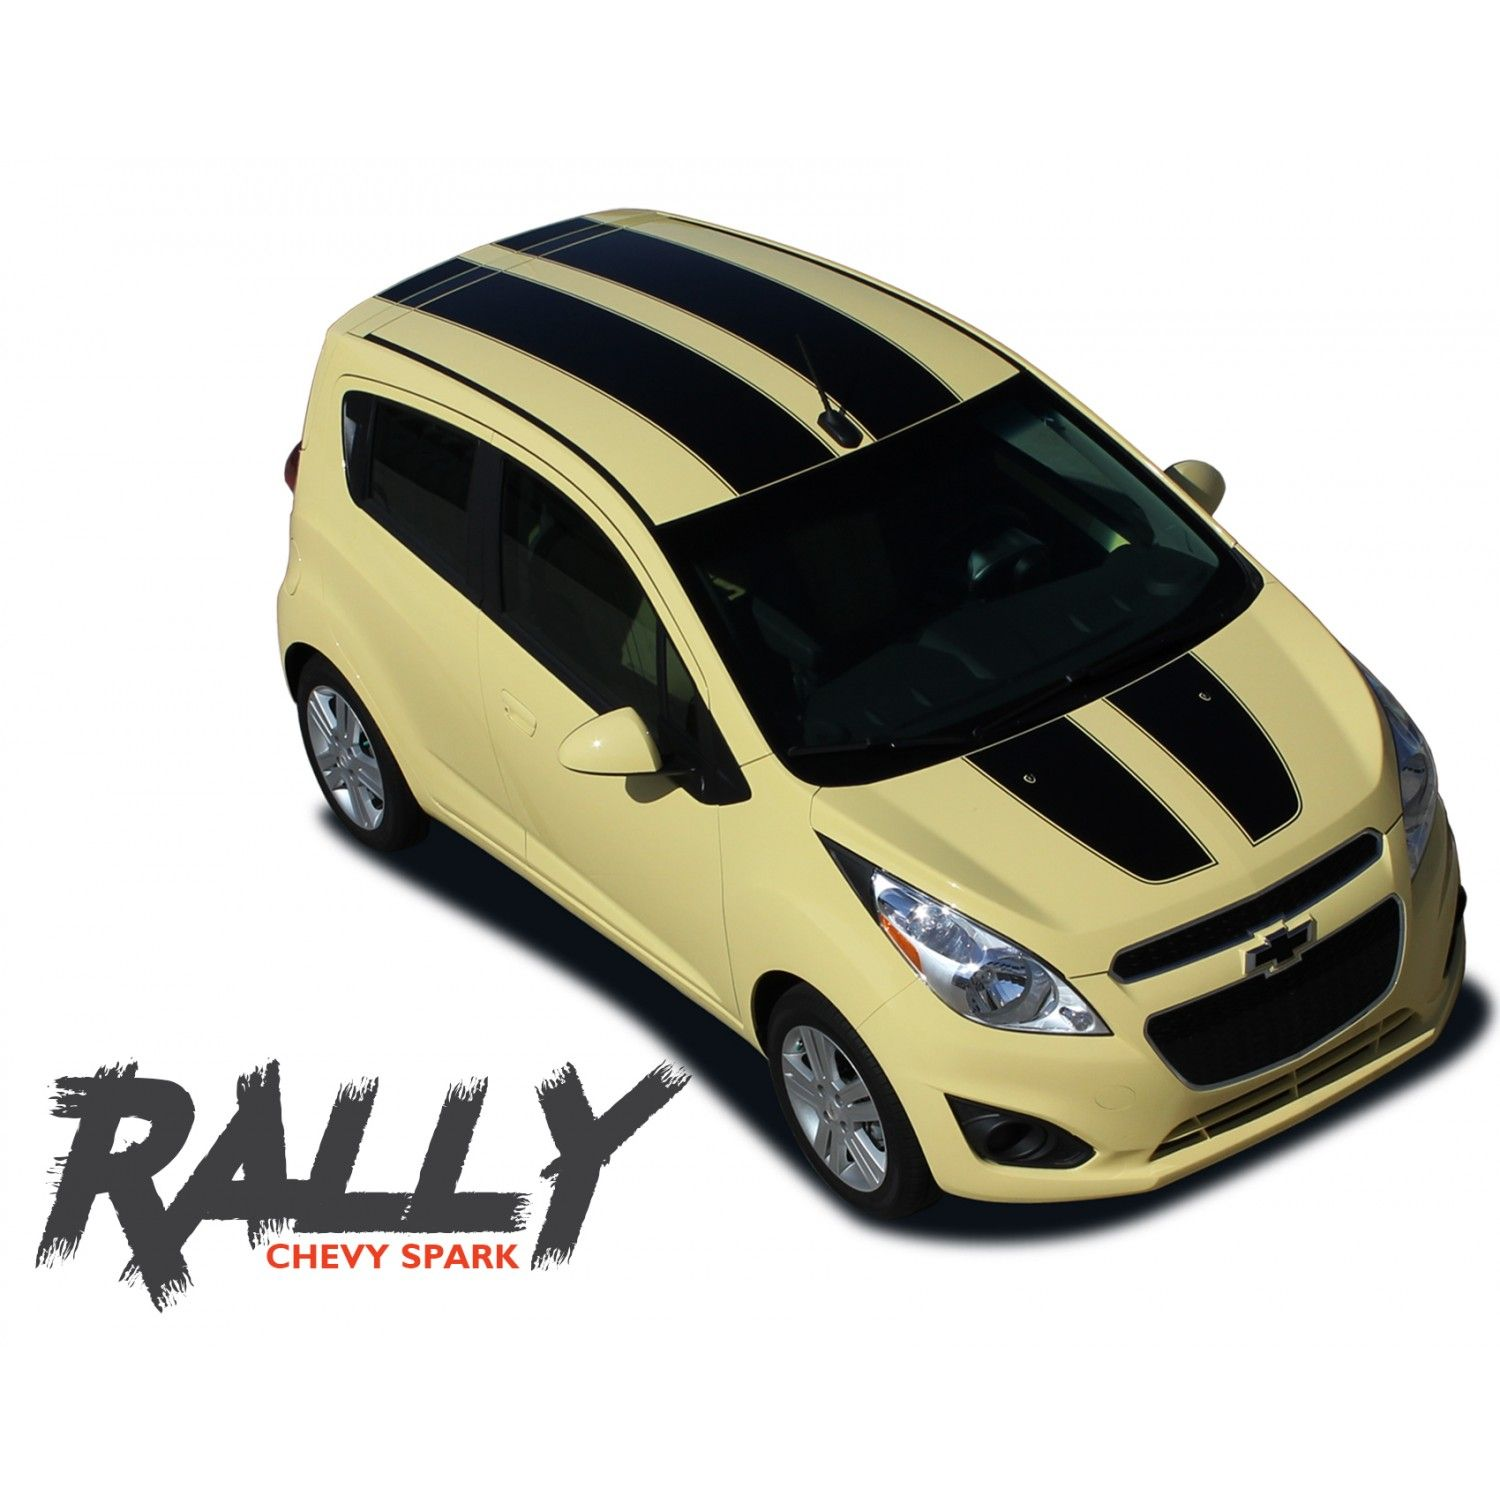 Chevy Spark Rally Hood Roof Racing Stripes Vinyl Graphics Decal